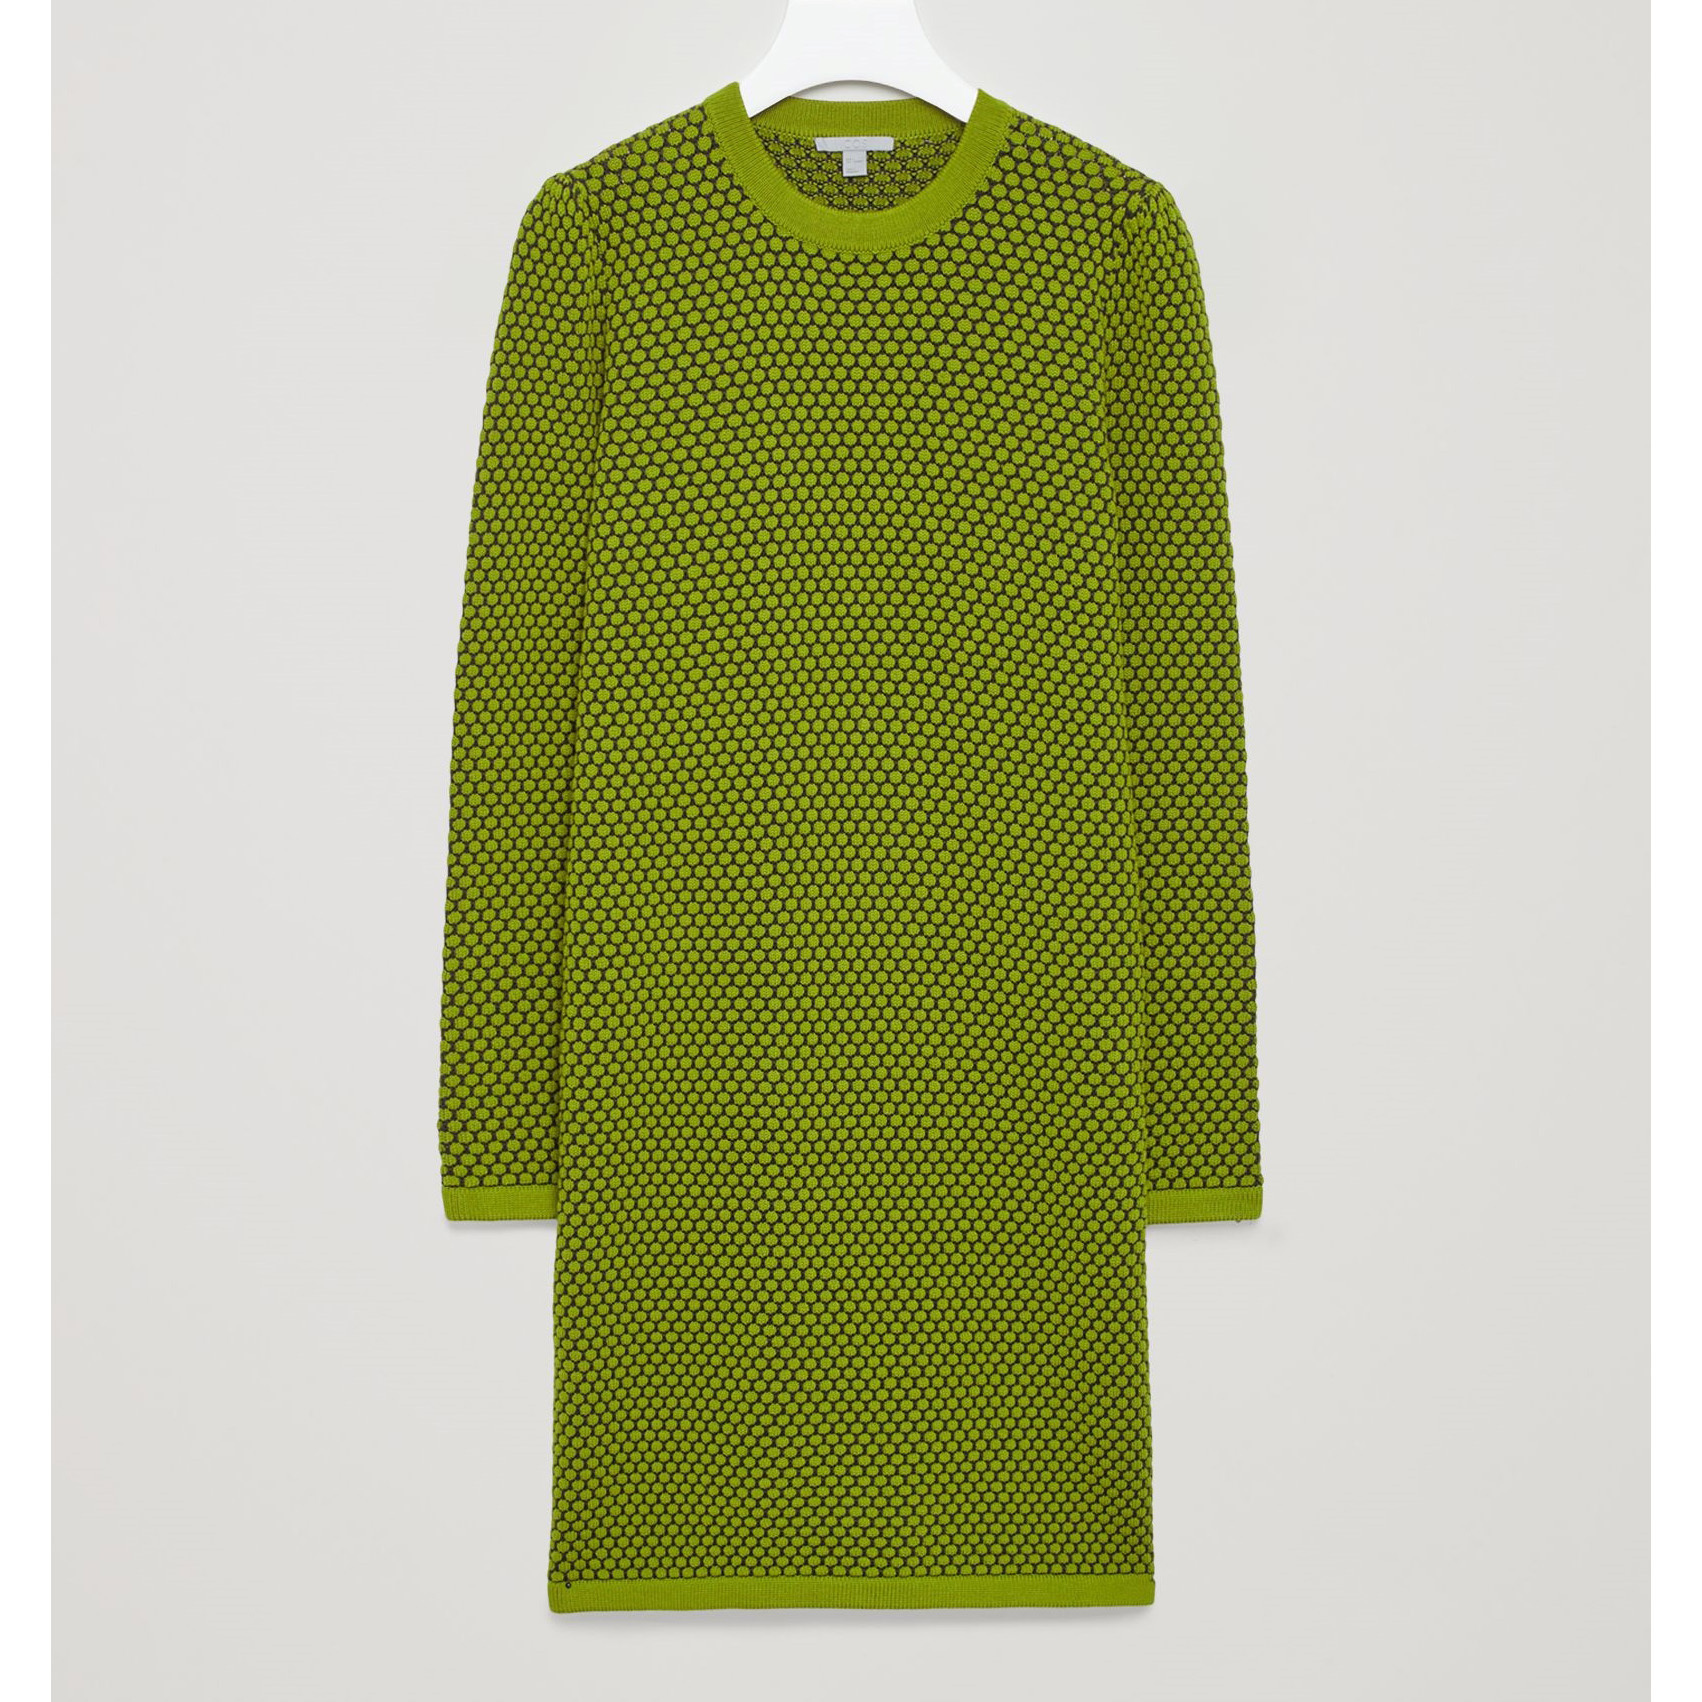 COS☆COTTON-JACQUARD DRESS / lime green